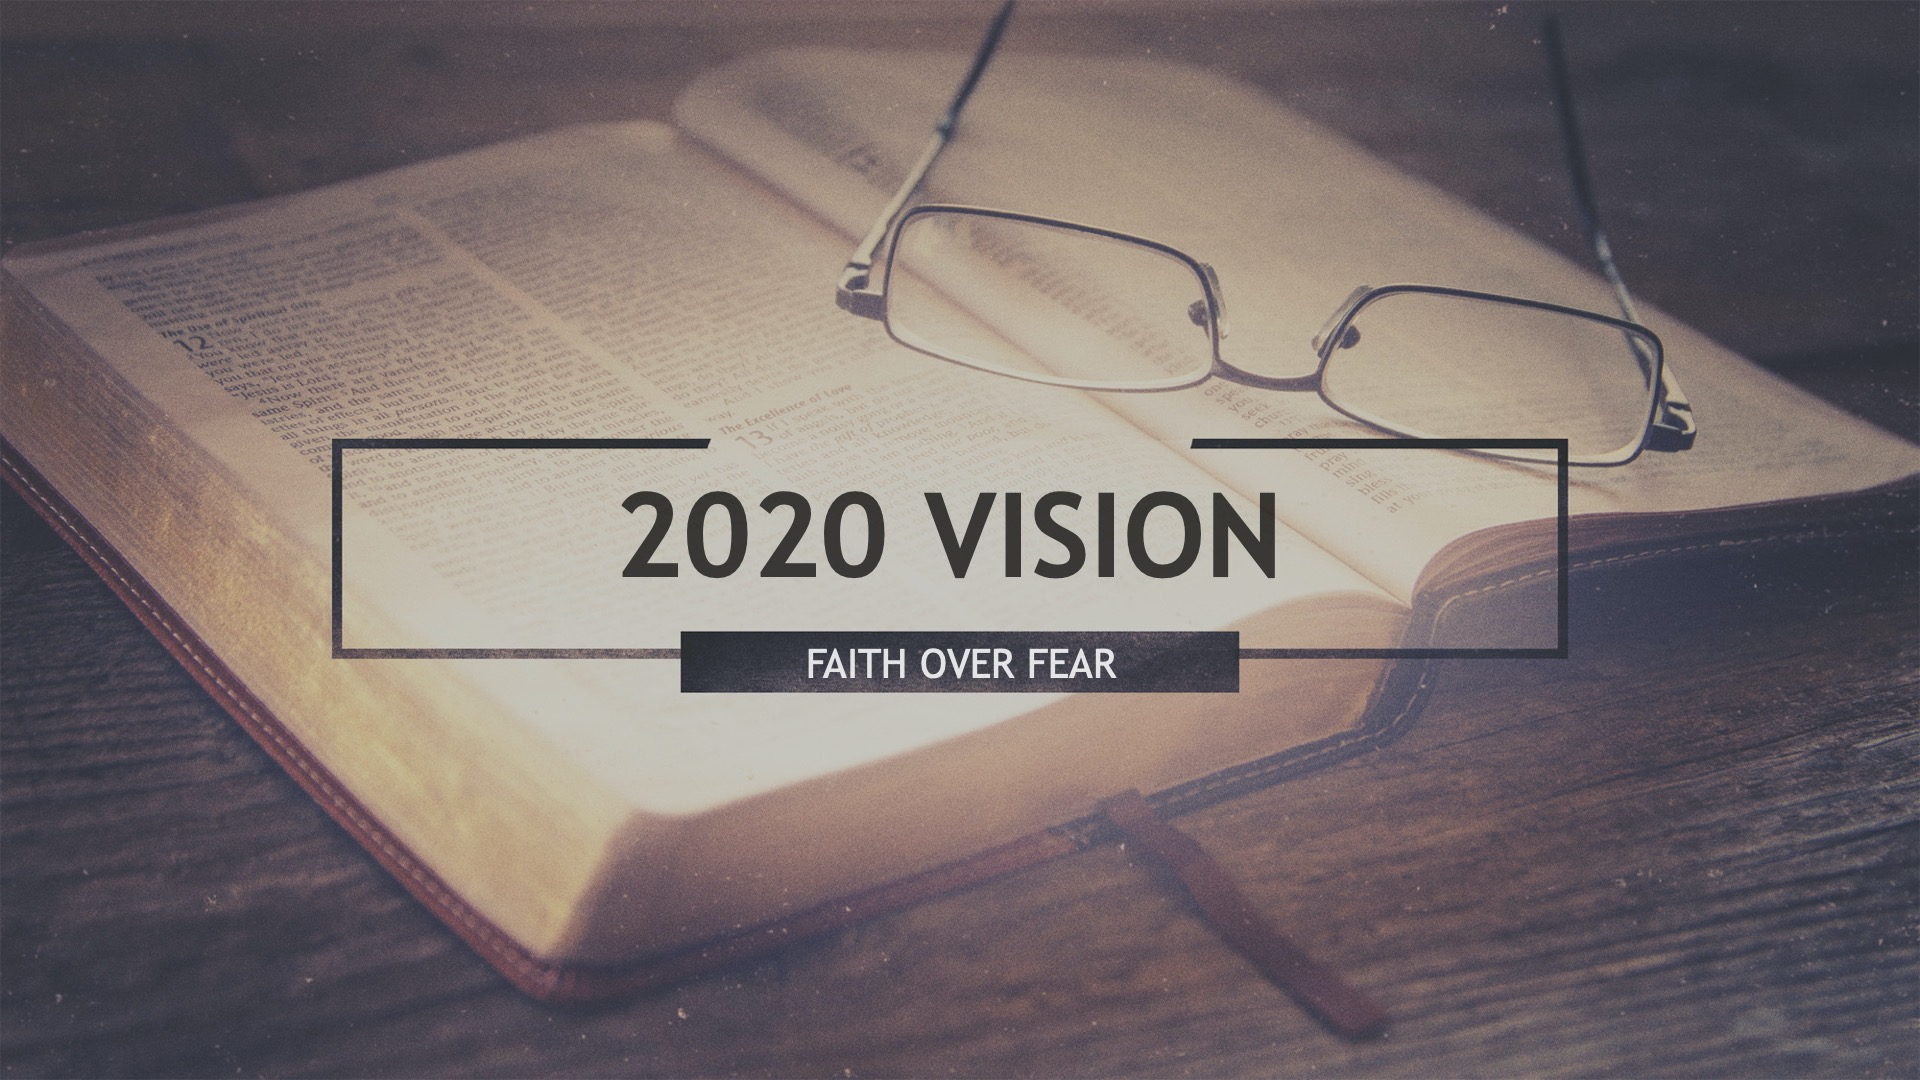 2020 Vision Faith Over Fear